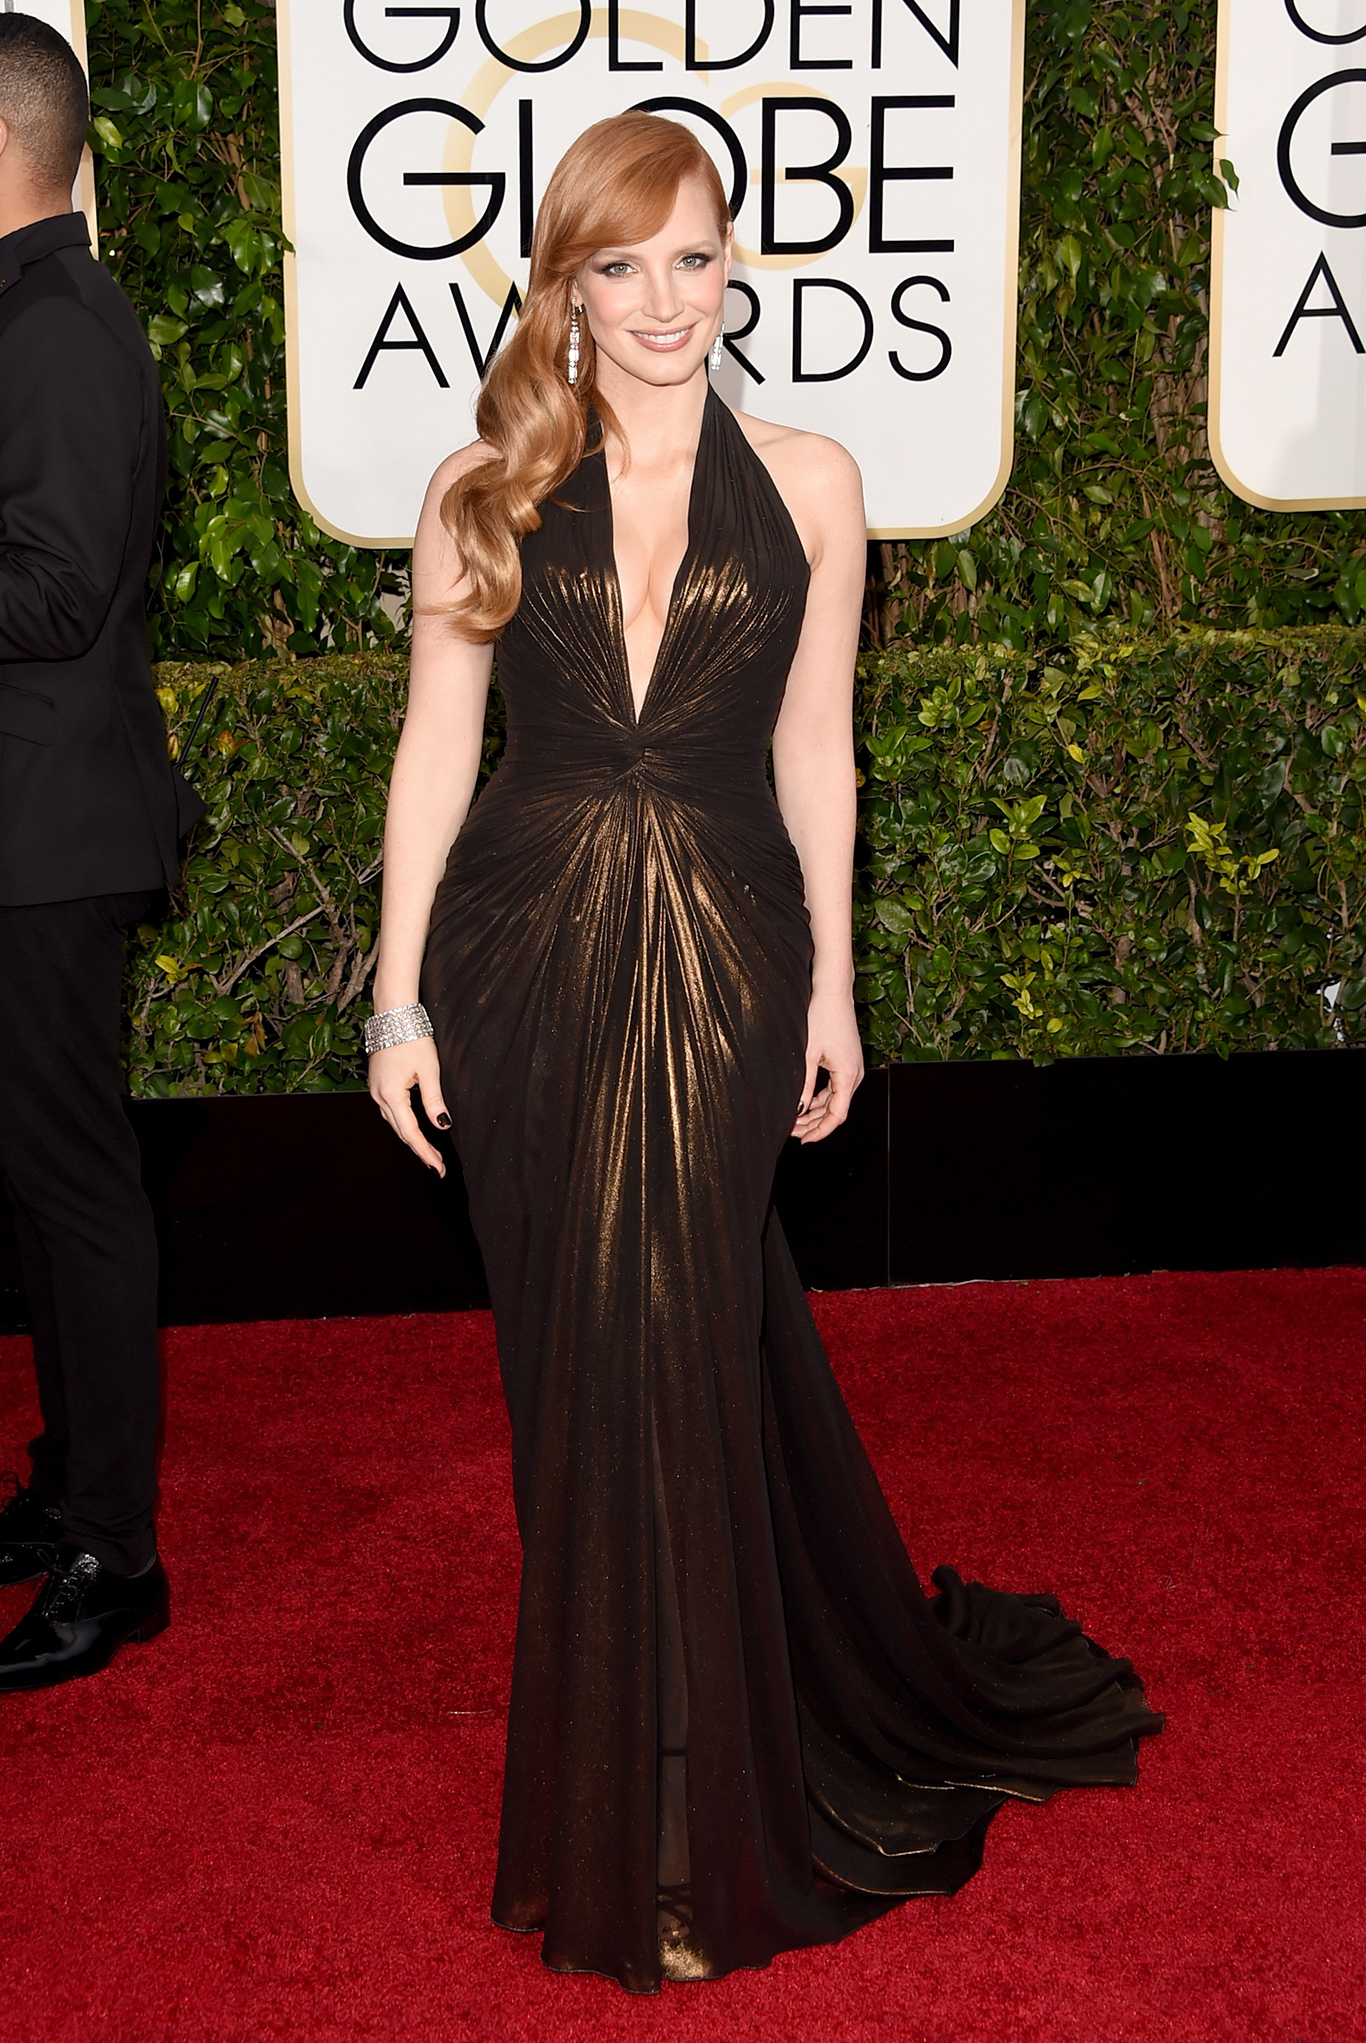 Jessica Chastain In Atelier Versace